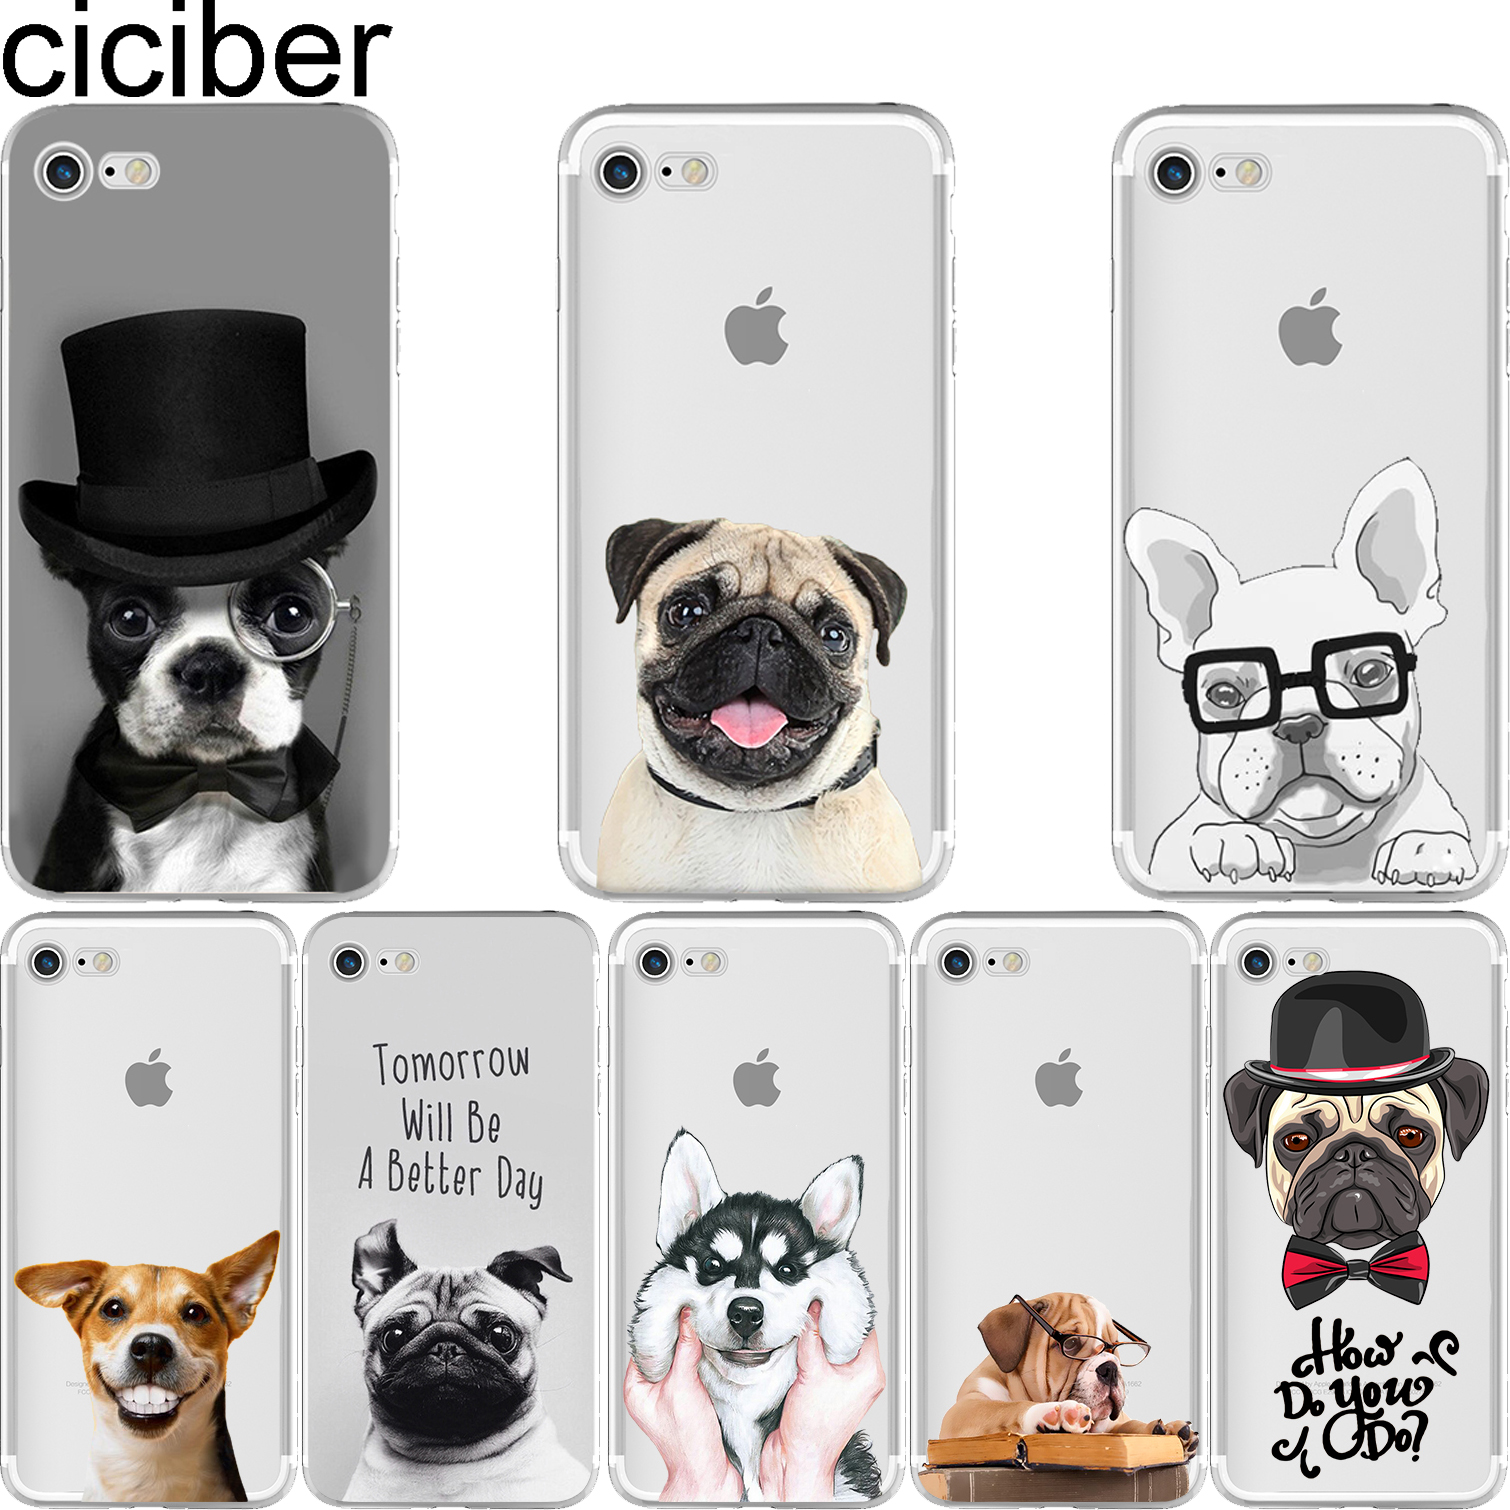 ciciber Animal Cute Pug Dog Pattern Design Soft Silicon Phone Cases Cover IPhone 6 6S 7 8 Plus 5S SE X Capinha Coque Fundas